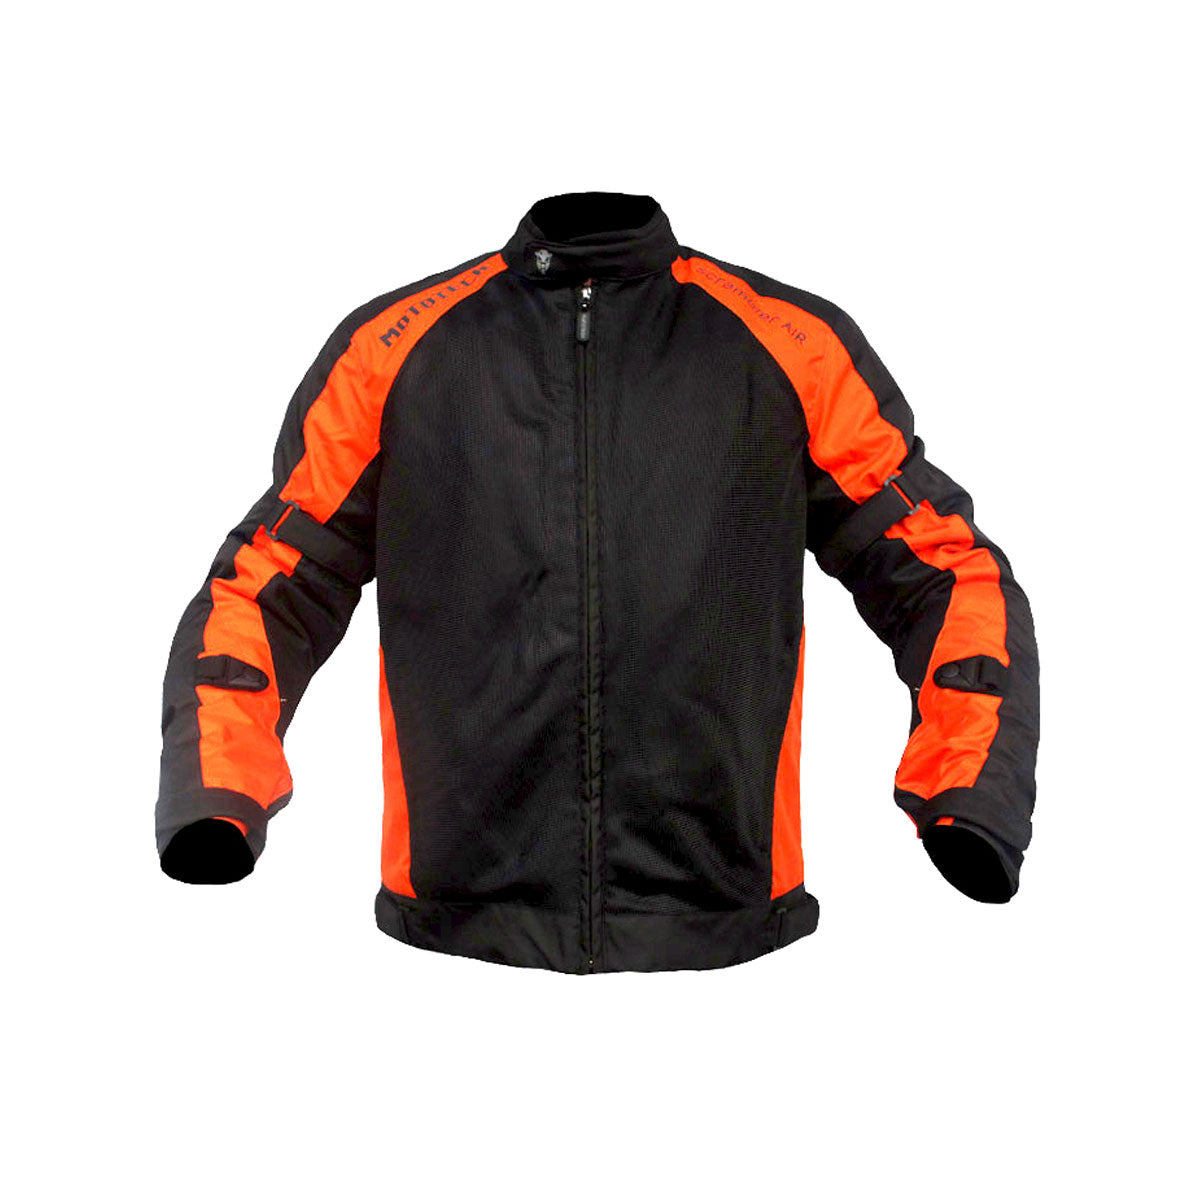 Scrambler Air Motorcycle Riding Jacket - Orange